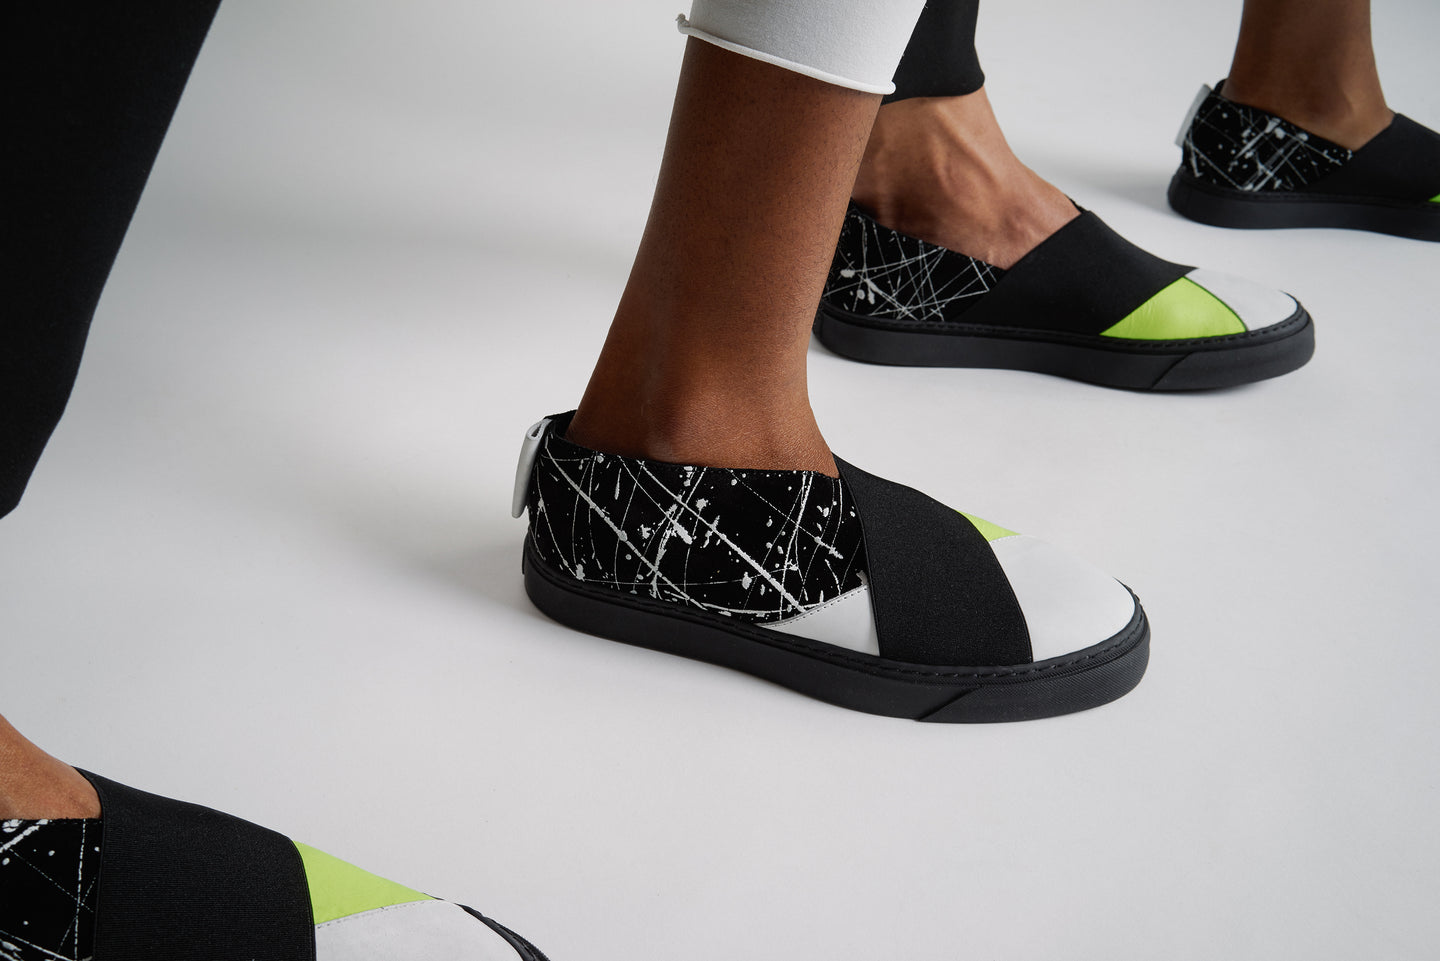 UNISEX SNEAKER WITH NEON AND PAINTED BLACK SUEDE LEATHER